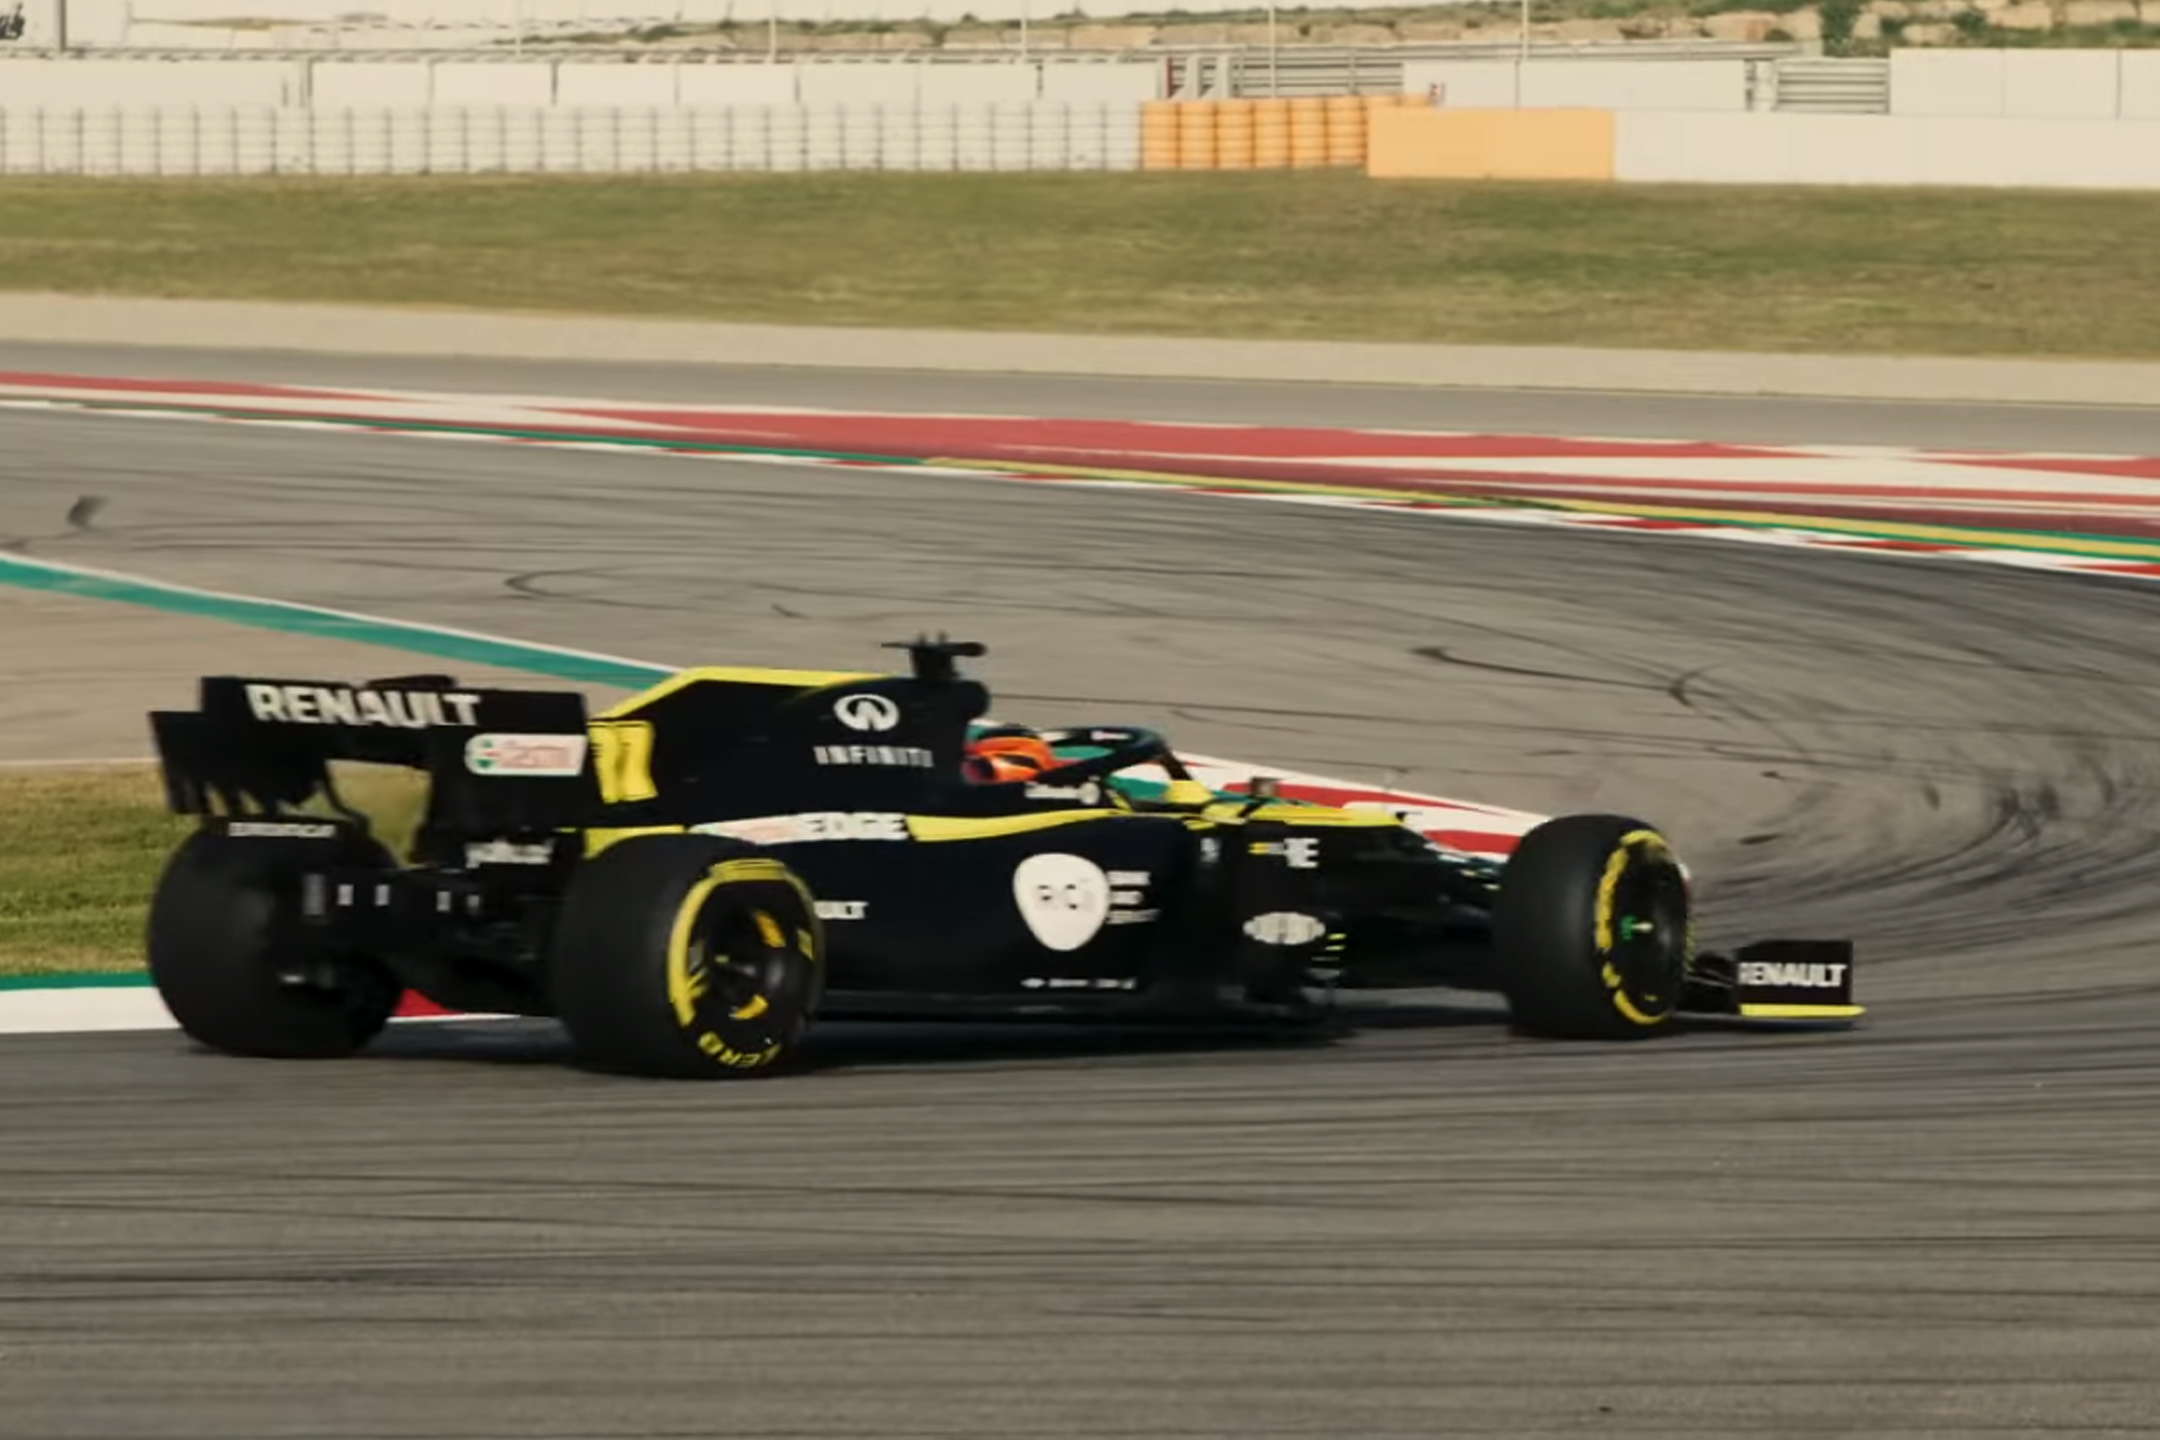 F1 - Renault F1 Team - R.S. 20 - 2020 - rear side-face speed track - racing 1st lap livery - preview screen